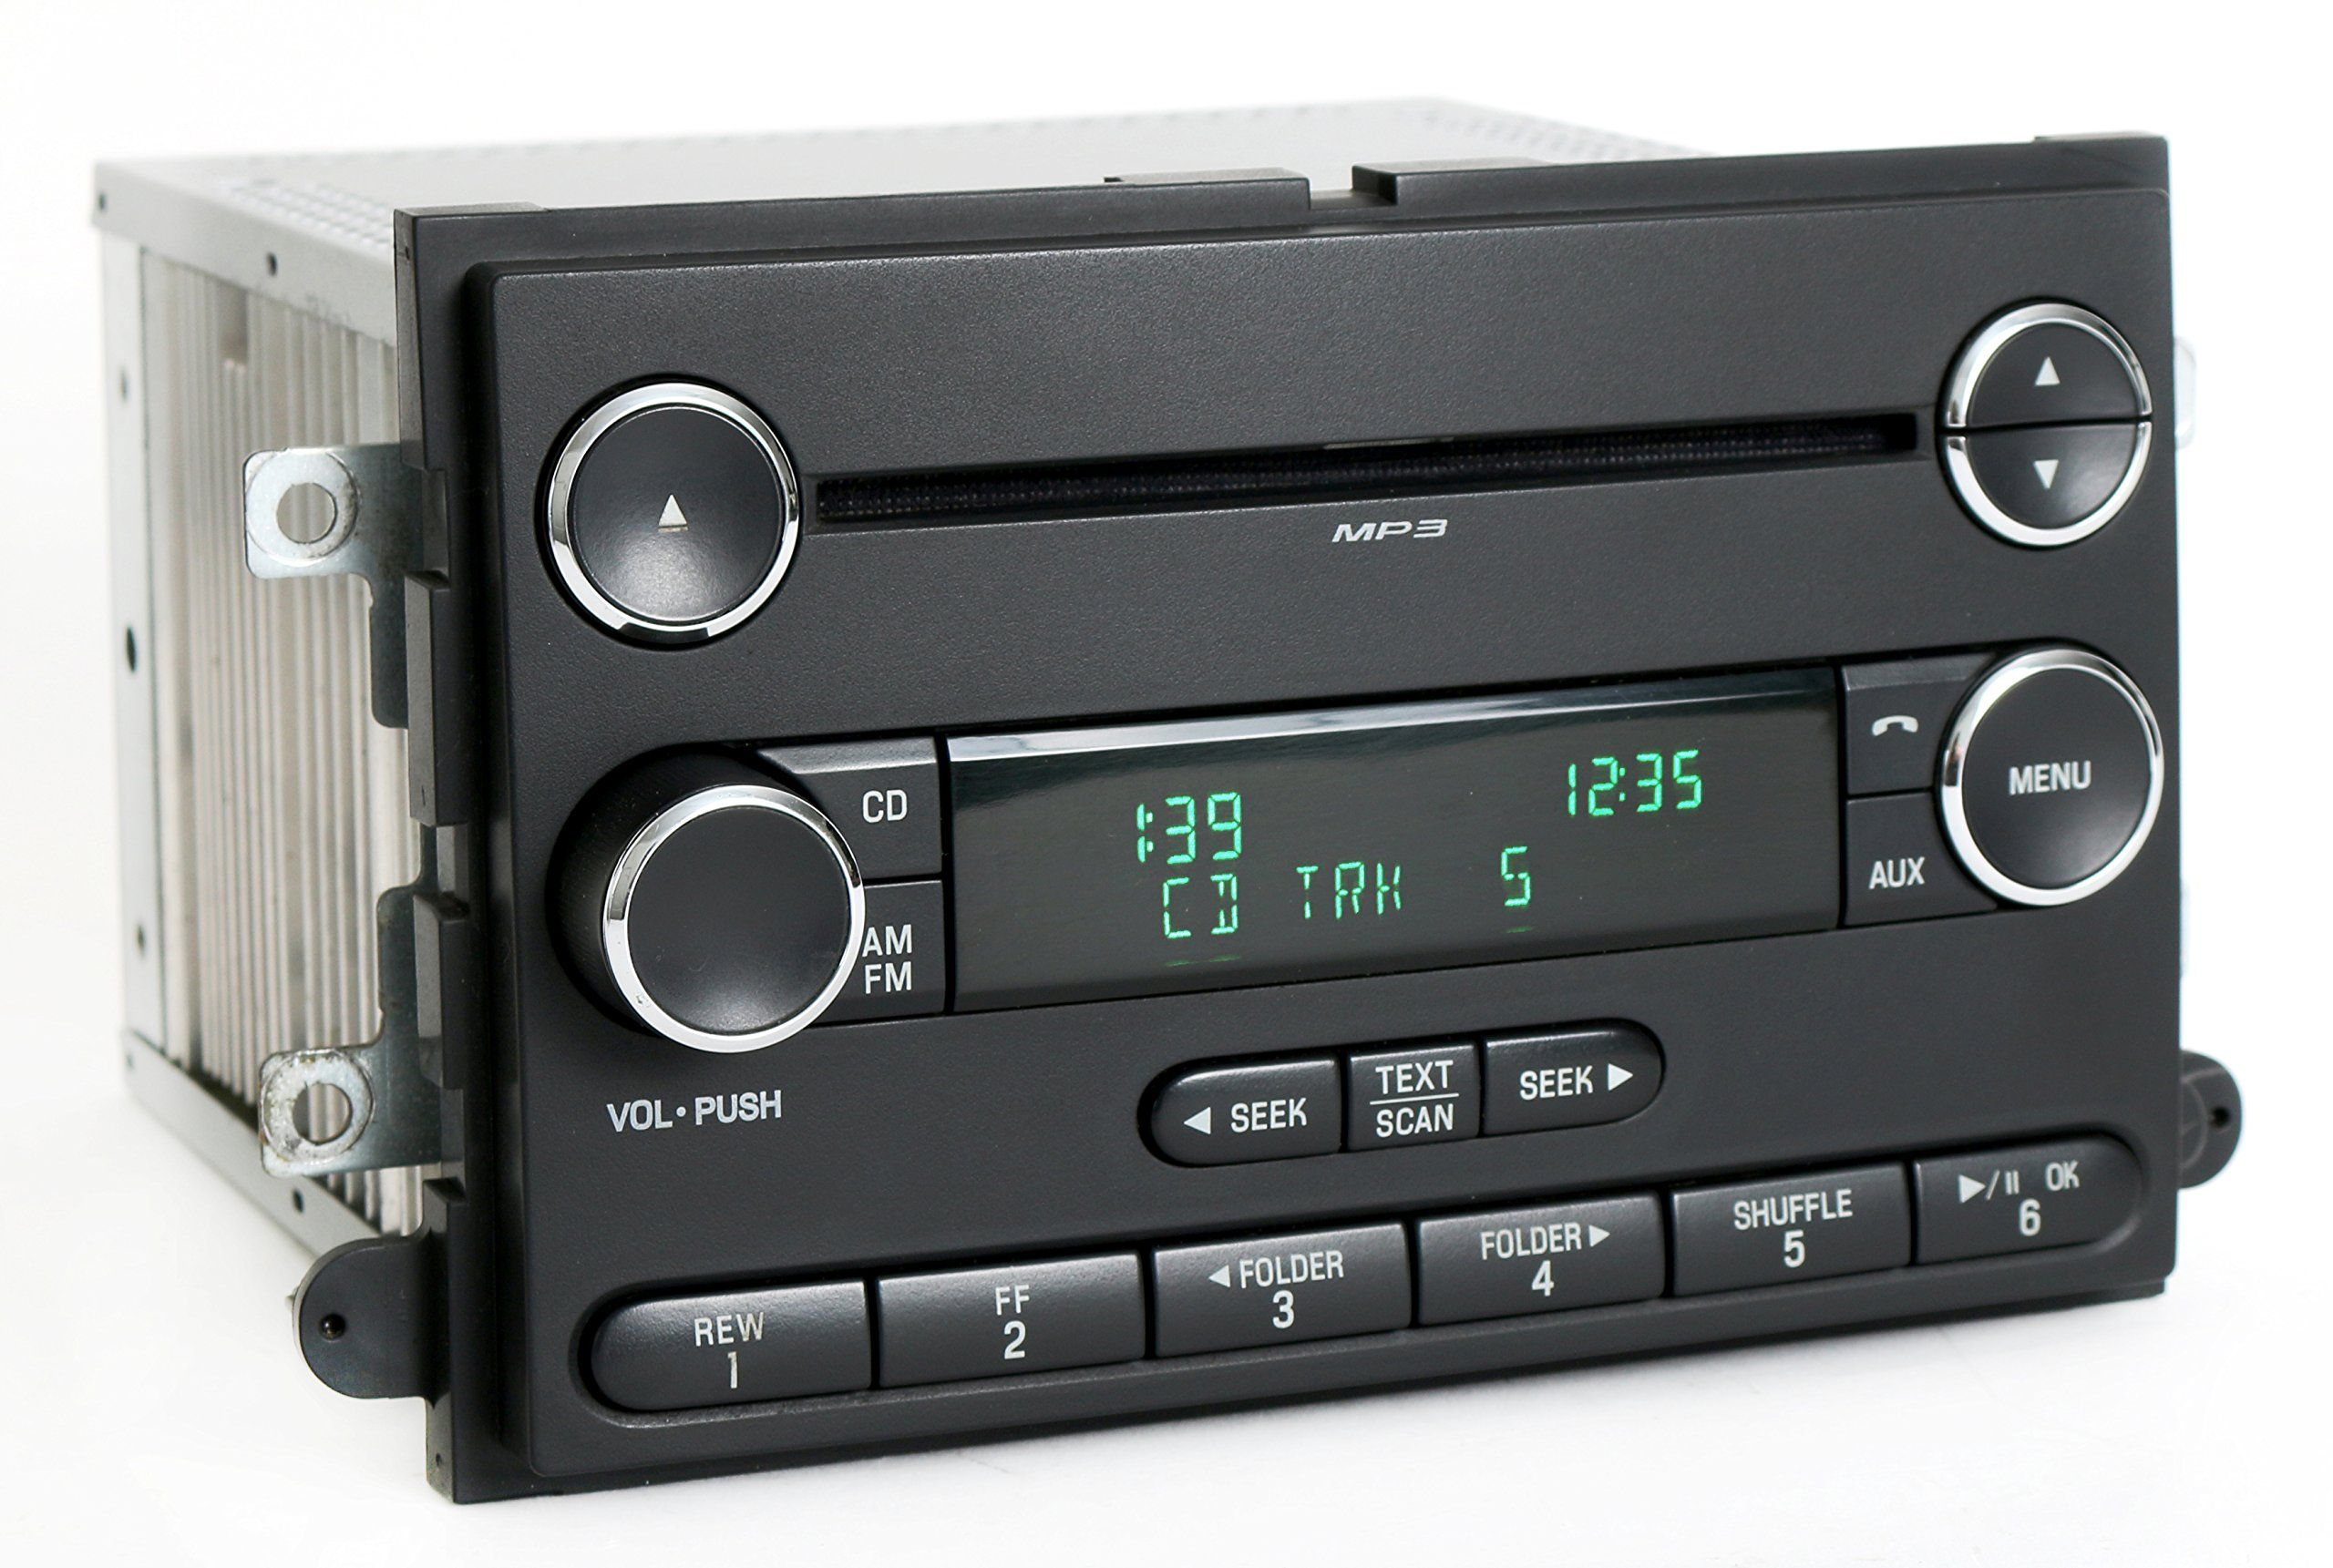 Ford pickup am fm cd player radio part number professionally remanufactured oem unit features am fm cd player plug and play functionality